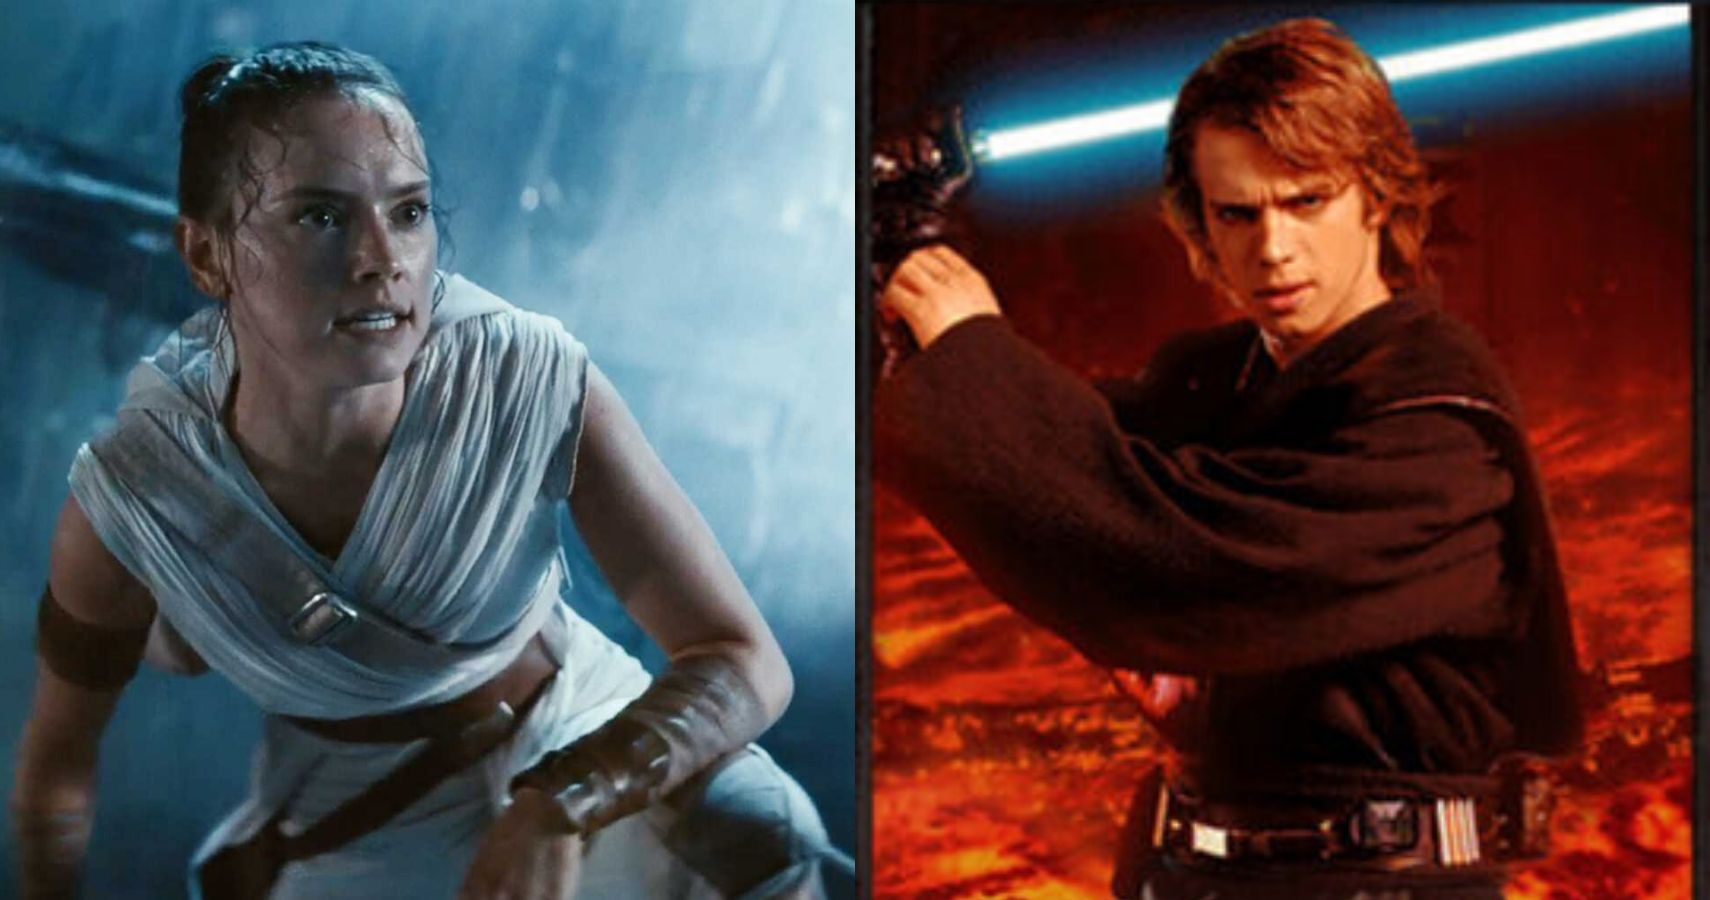 Rey Vs Anakin 5 Reasons Why Anakin Would Beat Rey 5 Reasons Why Rey Will Always Win